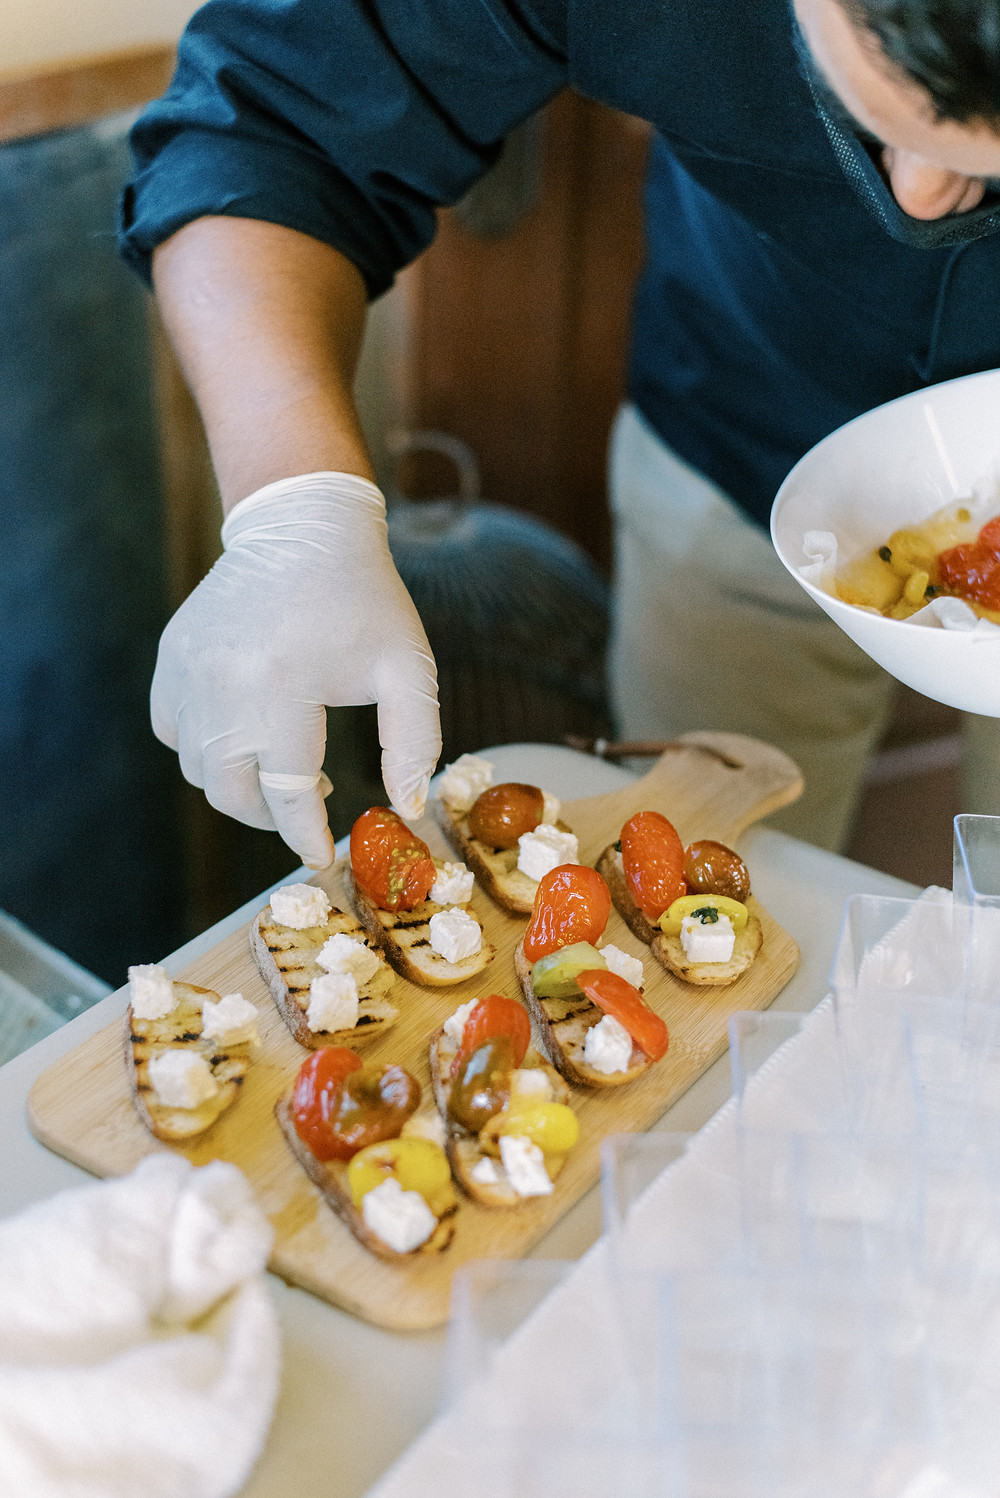 @chefjuancateringkitchen preparing delicious appetizers, paying close attention to the detail of food placement to look picture perfect